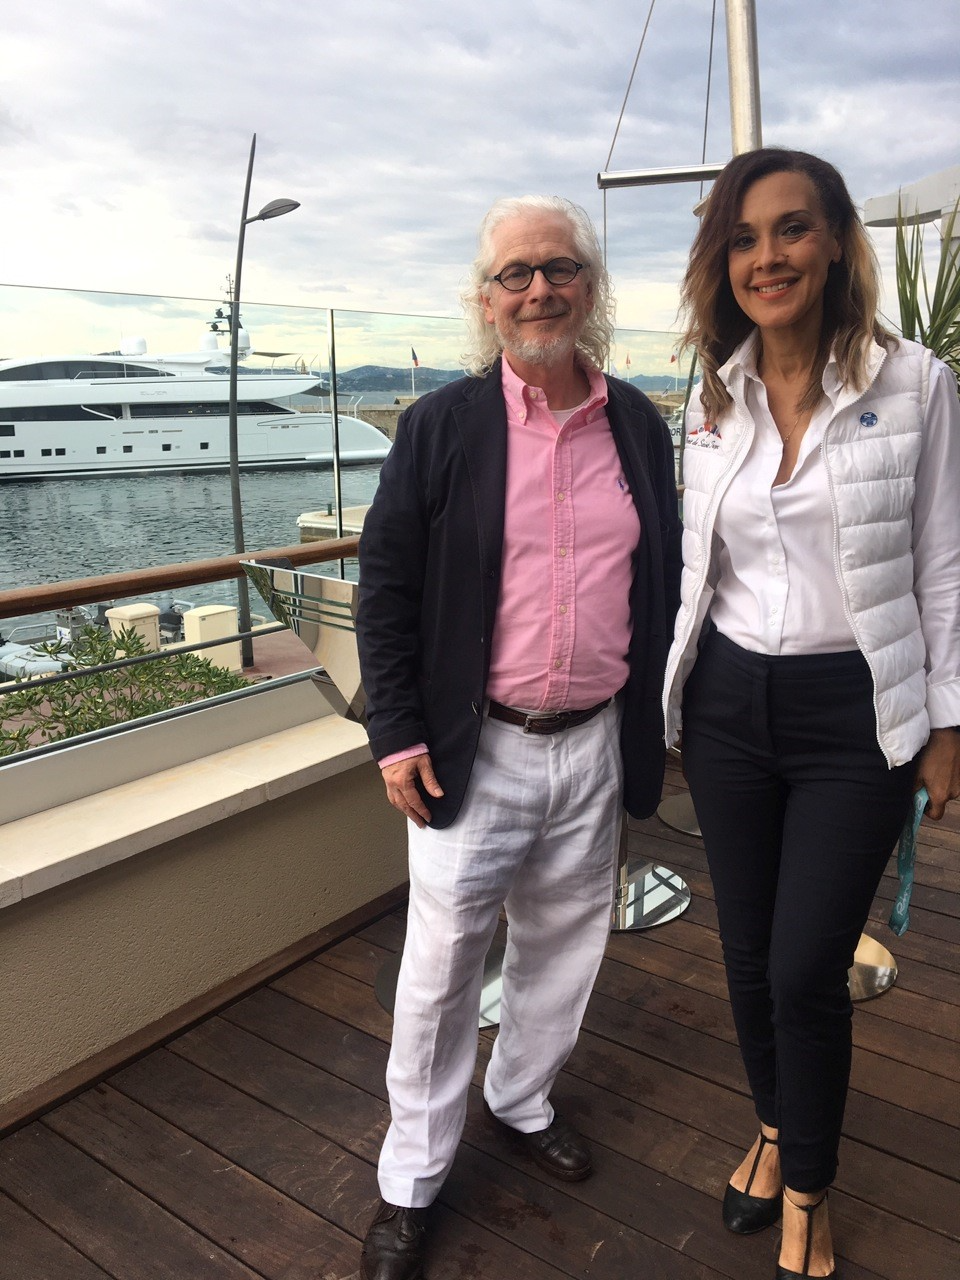 Anne-Marie Dandin, Head of Communications, Port de Saint-Tropez, with artist Peter Graham on the panoramic terrace balcony of the new Saint-Tropez Capitainerie Lounge Club